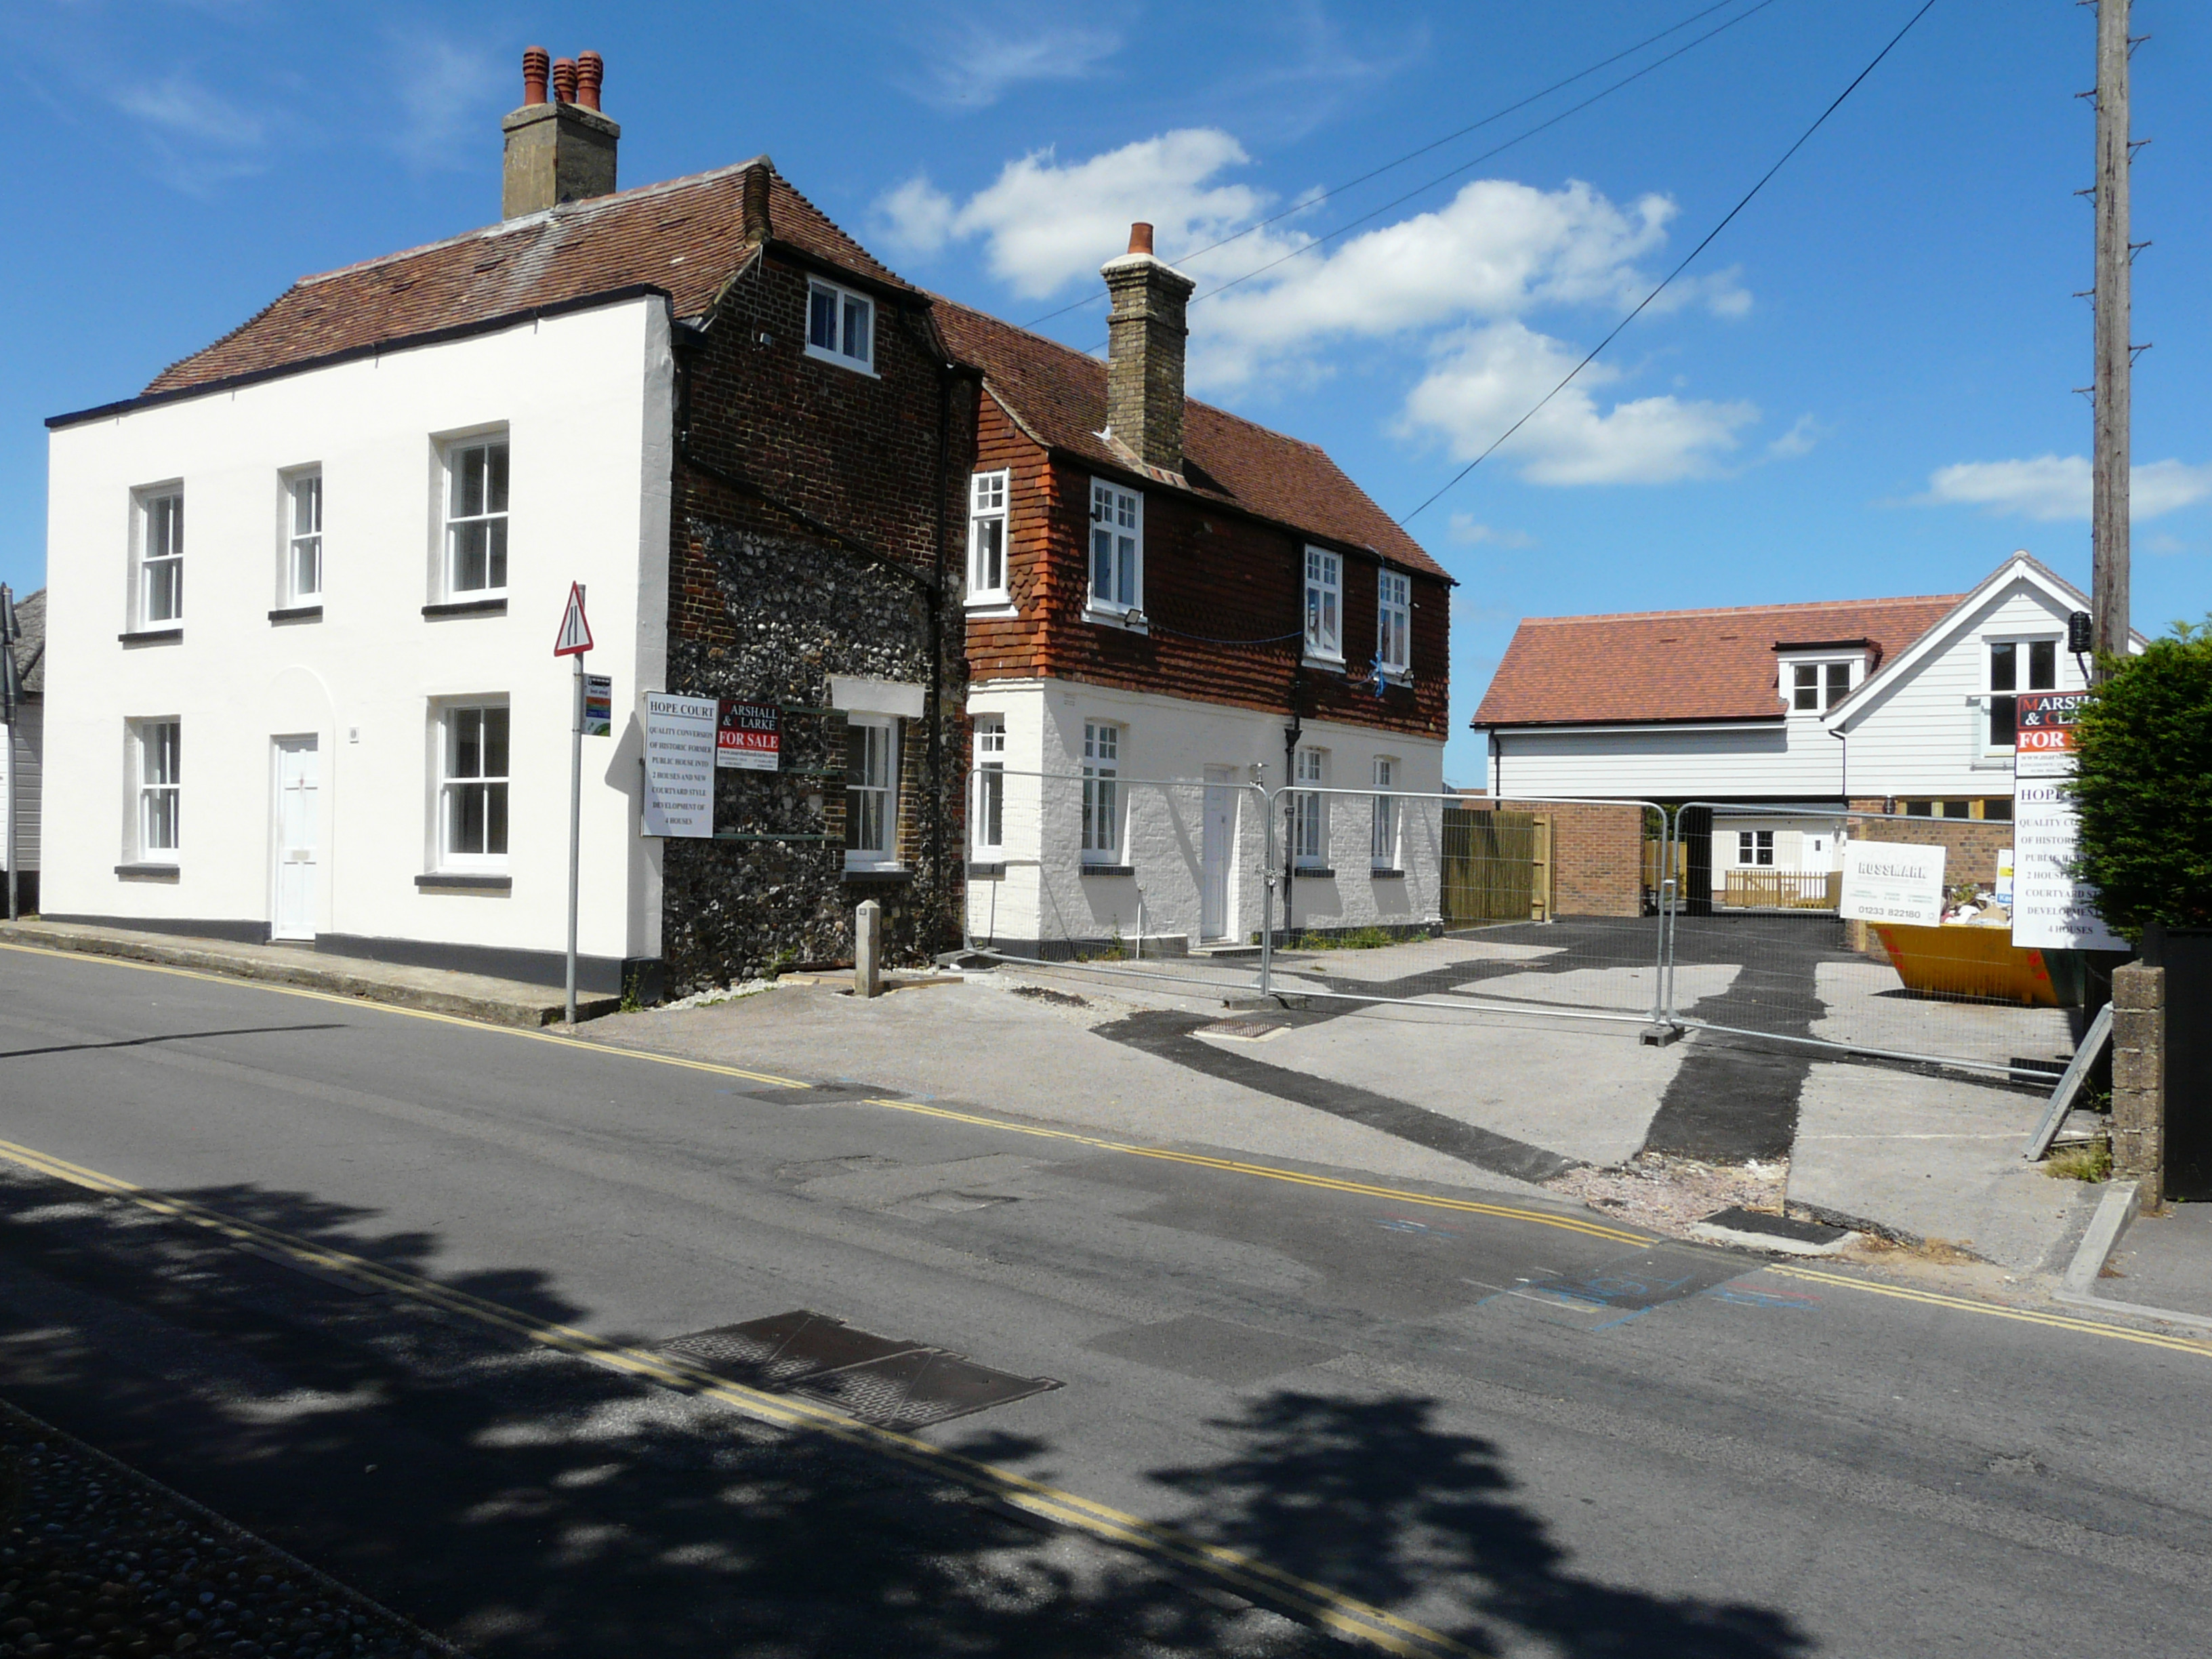 Hope Court, High Street, Cliffe, Kent Courtesy of John Baker Geograph